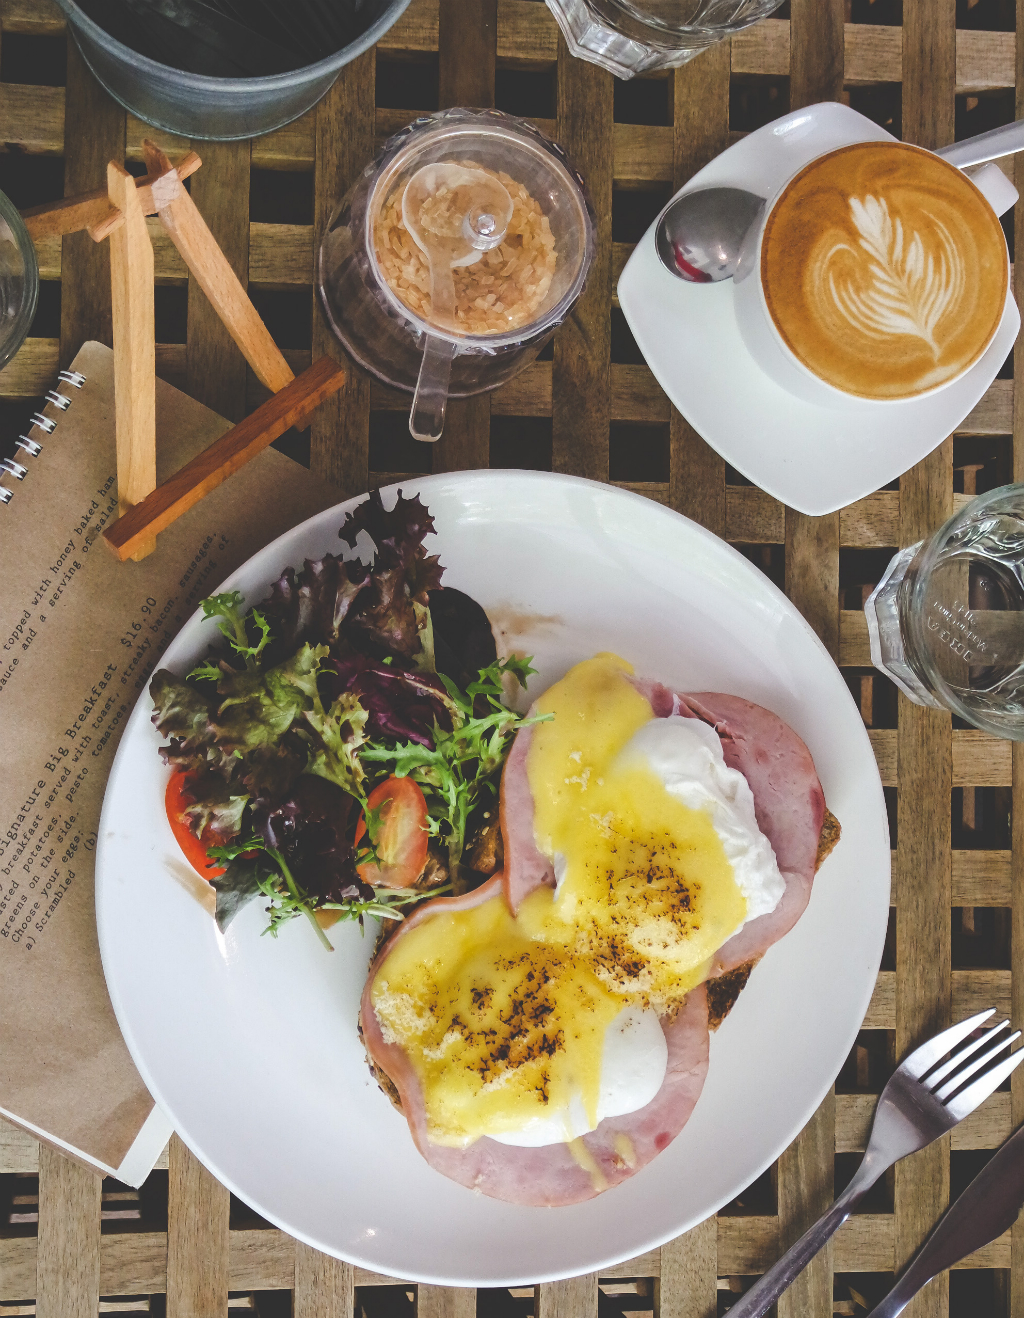 Guide to Jalan Besar & Lavender: L'Etoile Cafe's Eggs Benedict and coffee.